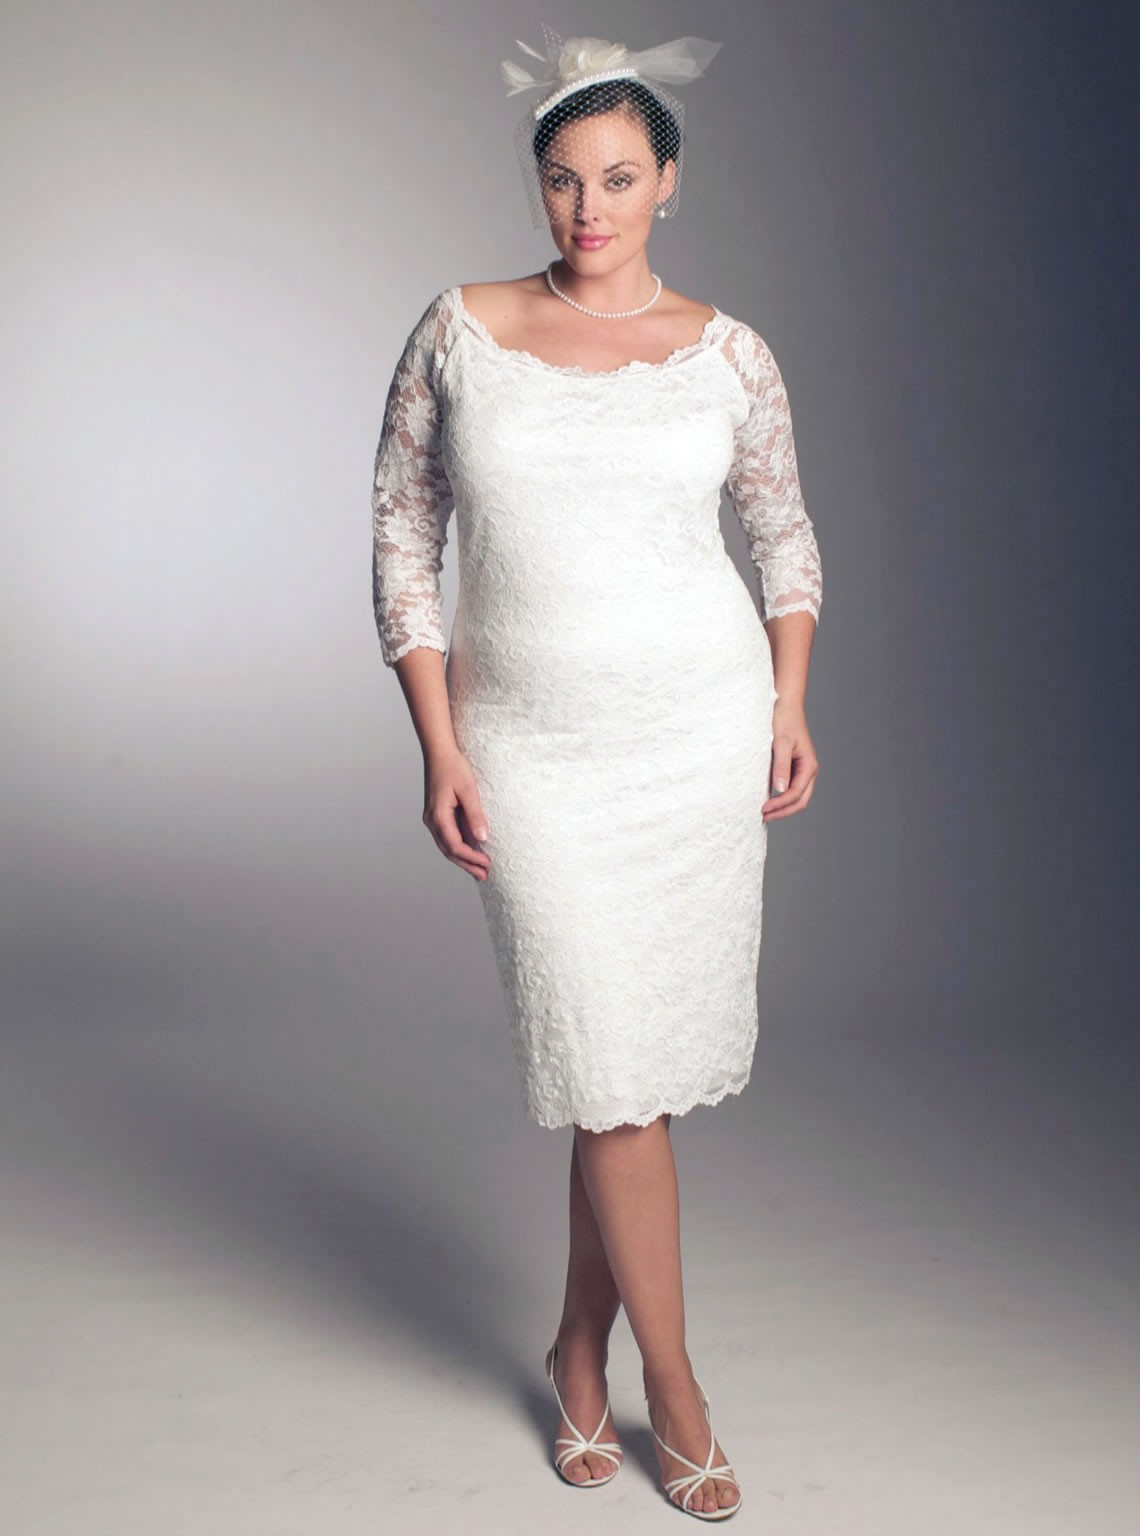 Bombshell Bride: Affordable Wedding Dresses Online